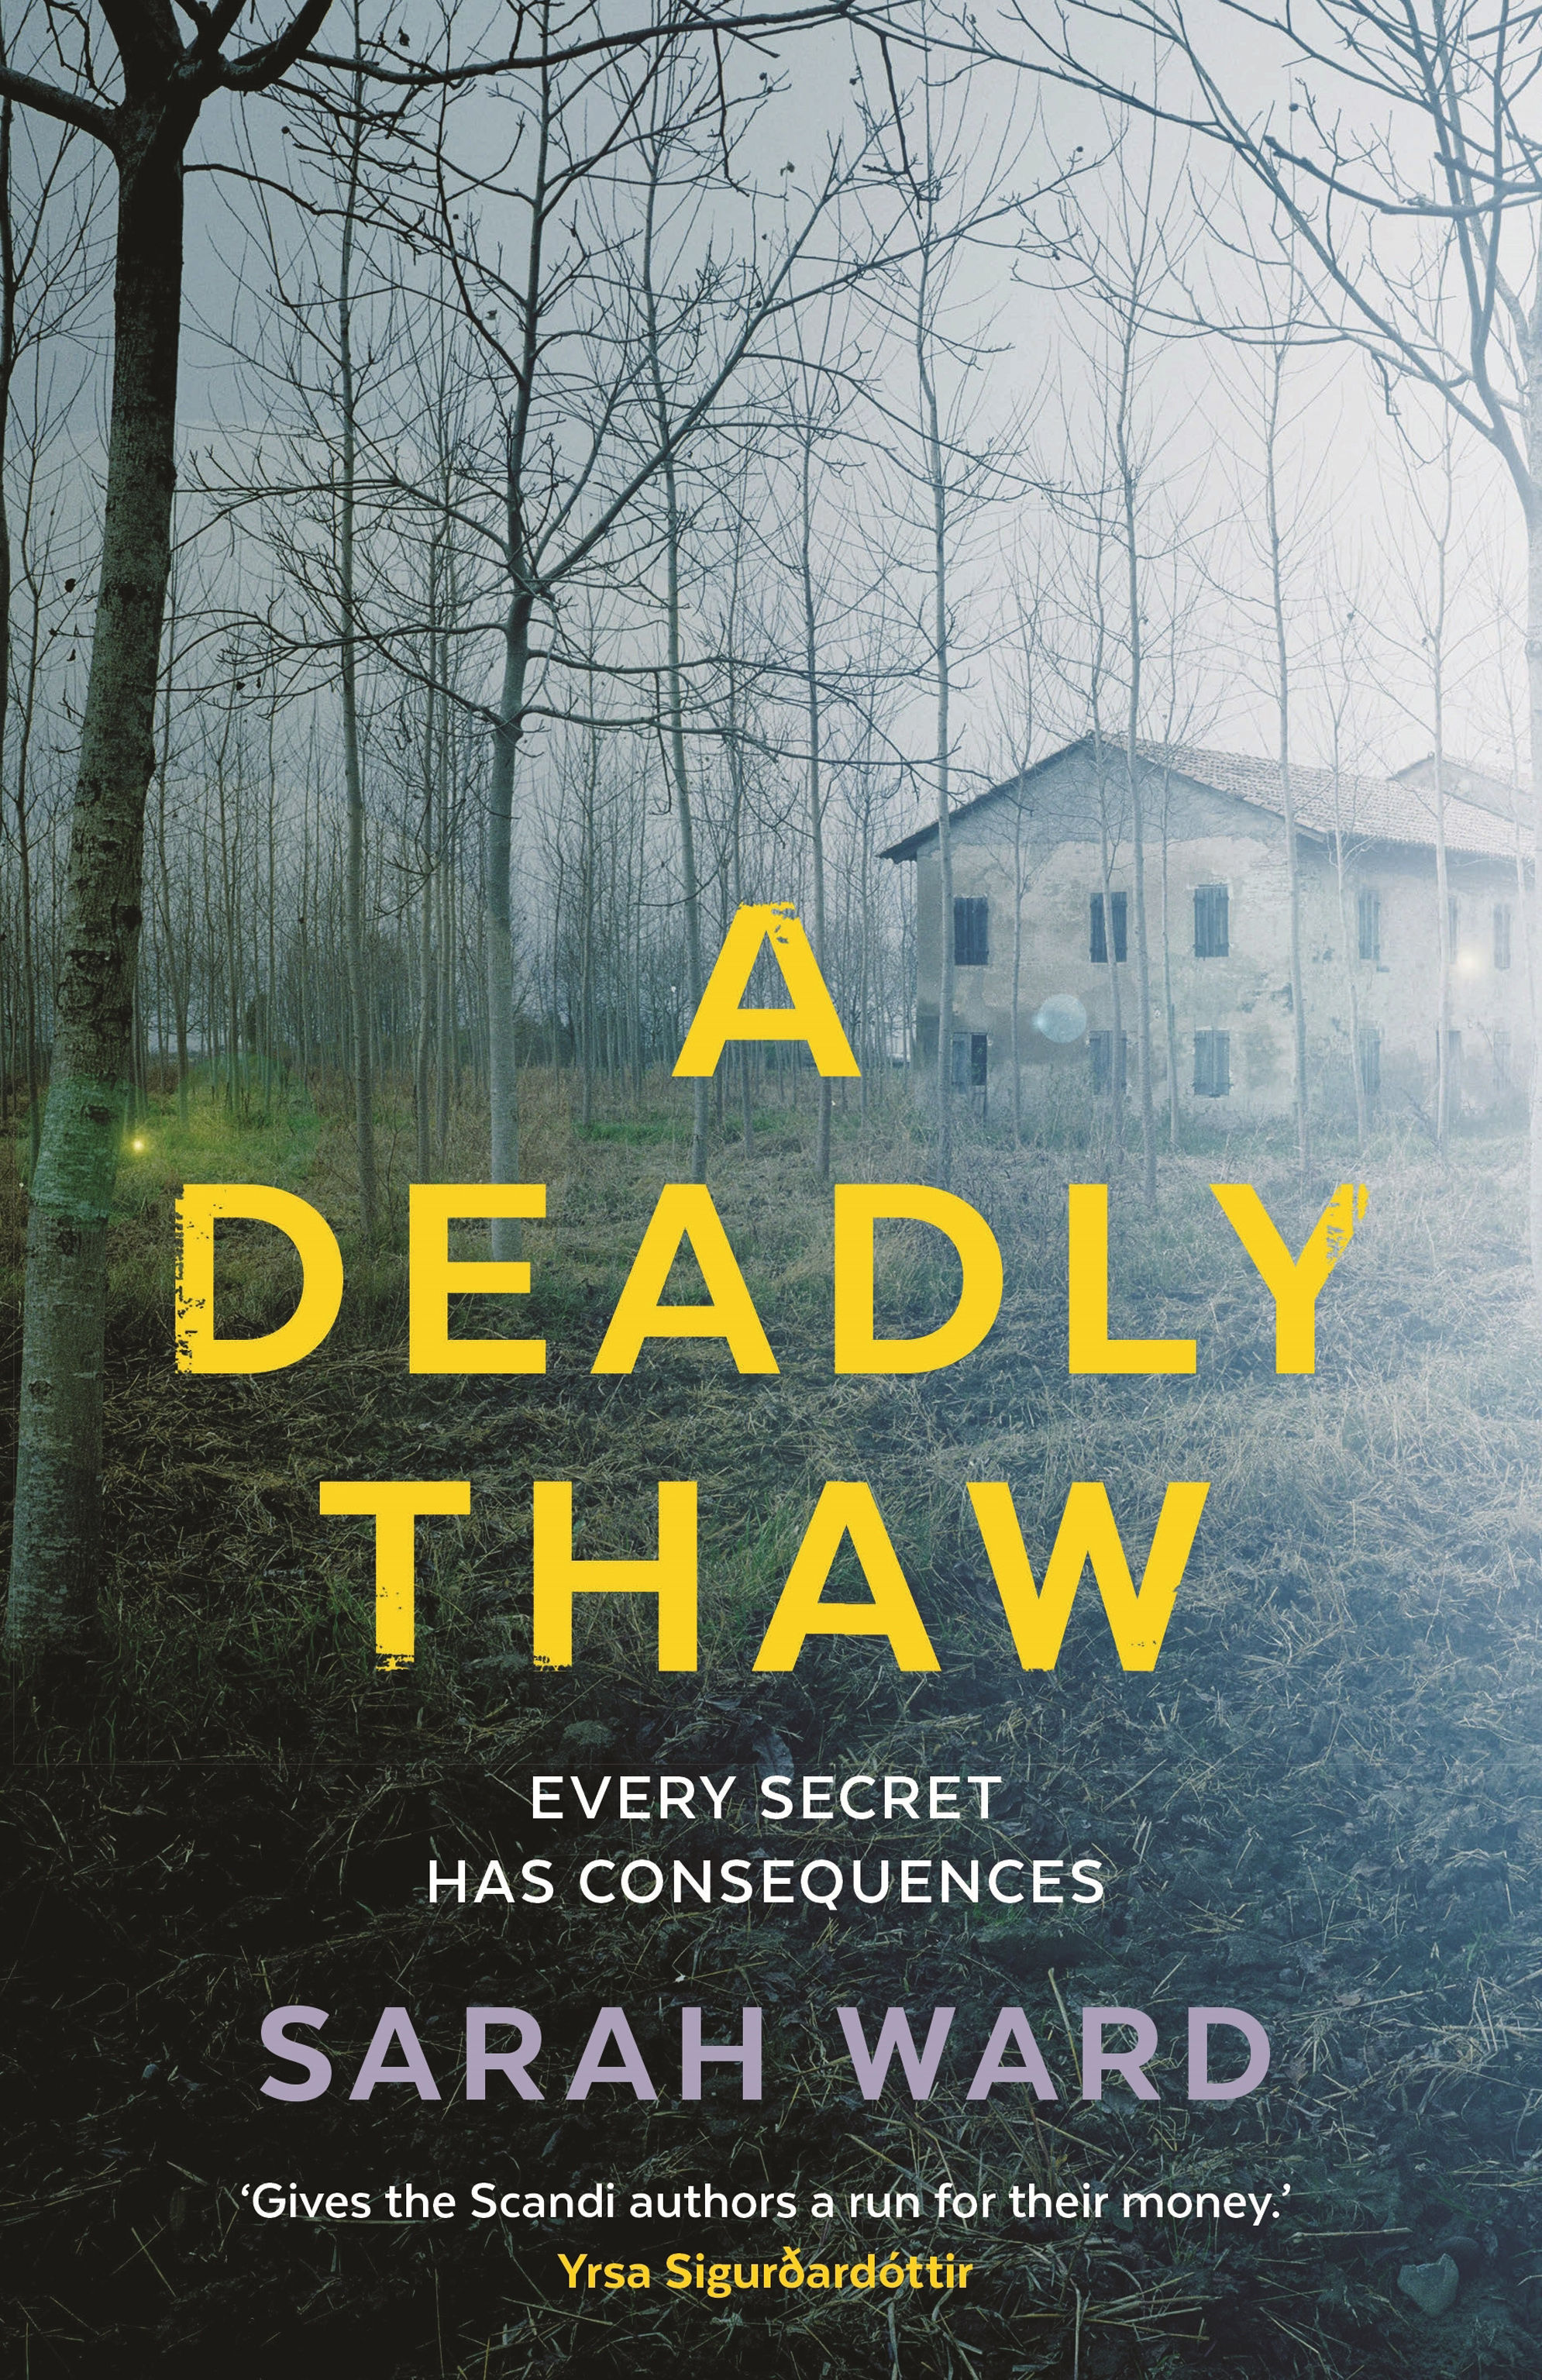 A Deadly Thaw by Sarah Ward.